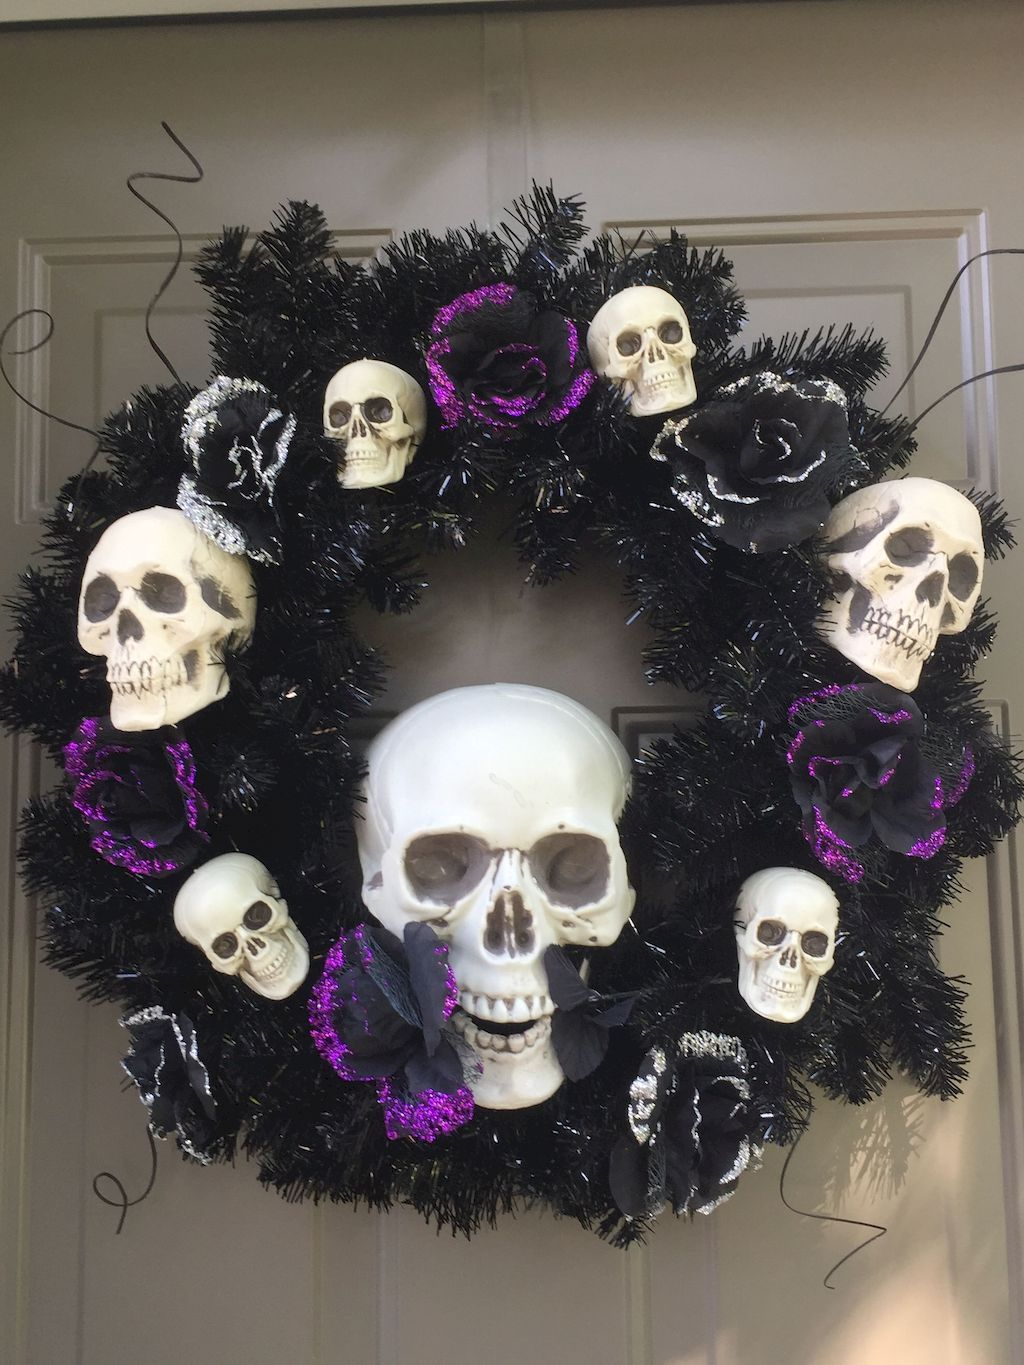 DIY Halloween Wreaths Ideas - Cute Outdoor Halloween Decorations - Pinterest Outdoor Halloween Decorations